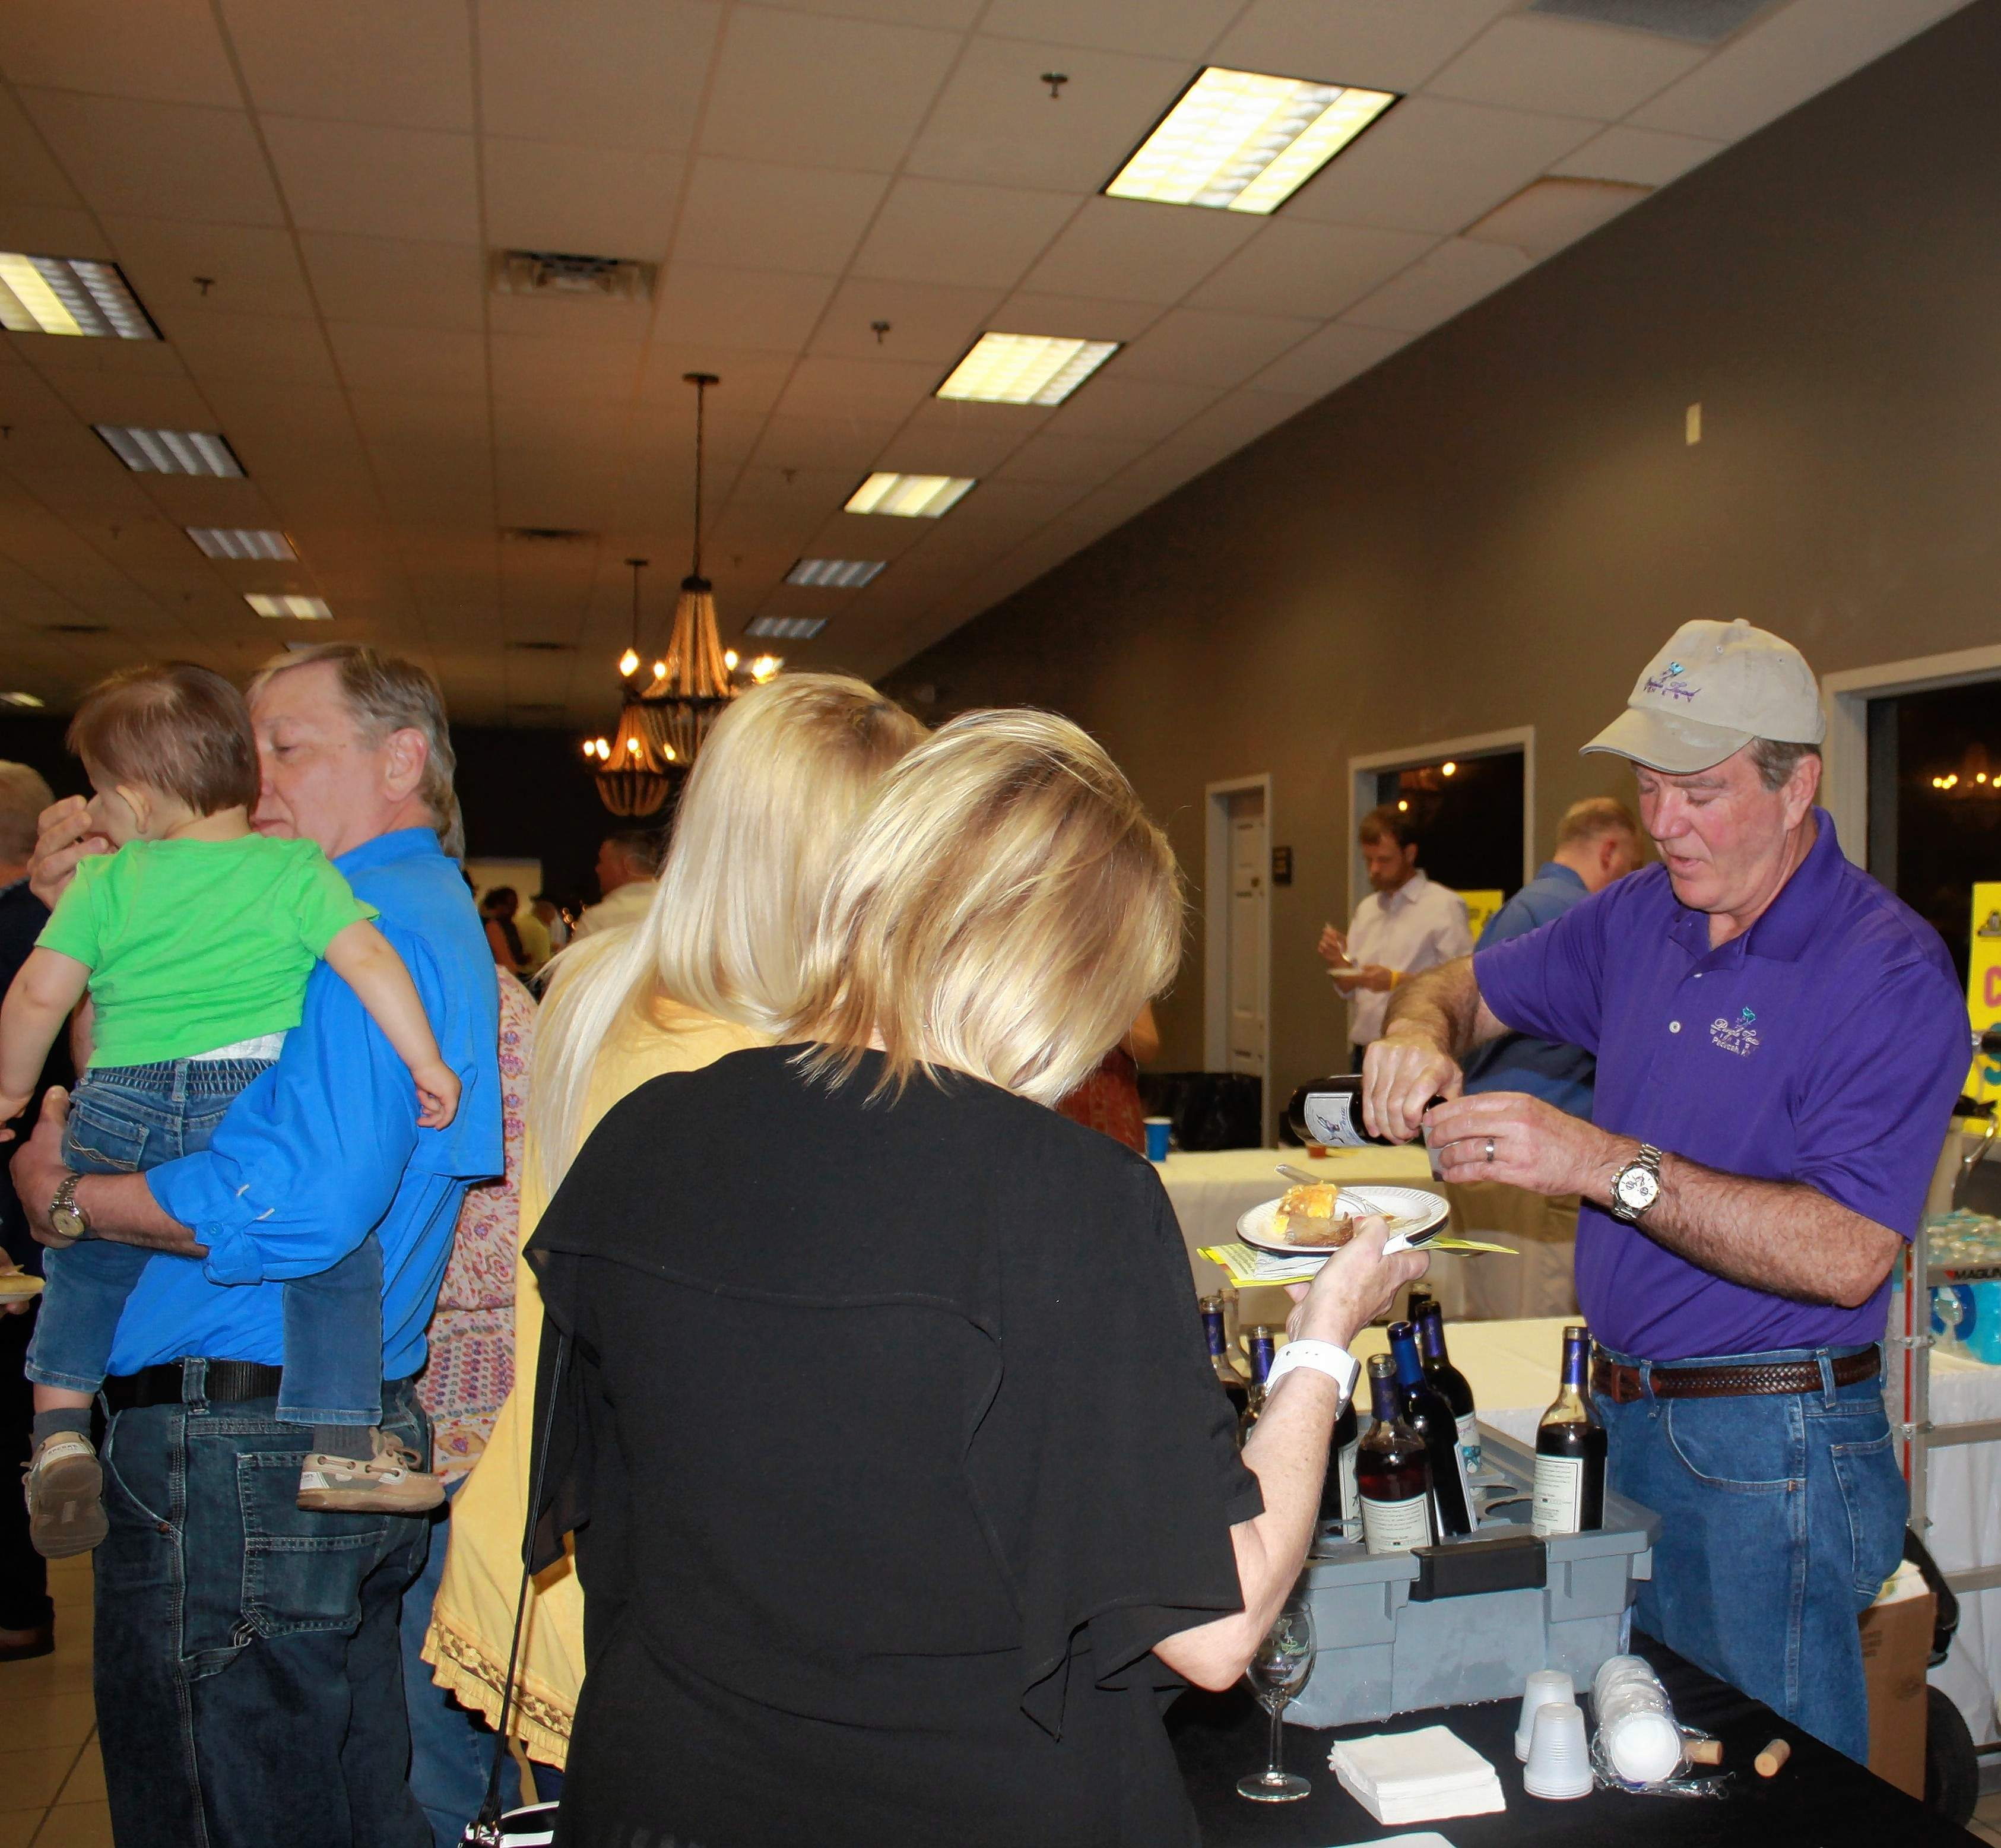 A server for Purple Toad Winery of Paducah, Kentucky pours a sample. Purple Toad has attended Taste of SI for the past three years. This year,  they offered a variety of wines including their Red Sangria, Lauren's Blackberry, and Paducah Harbor.